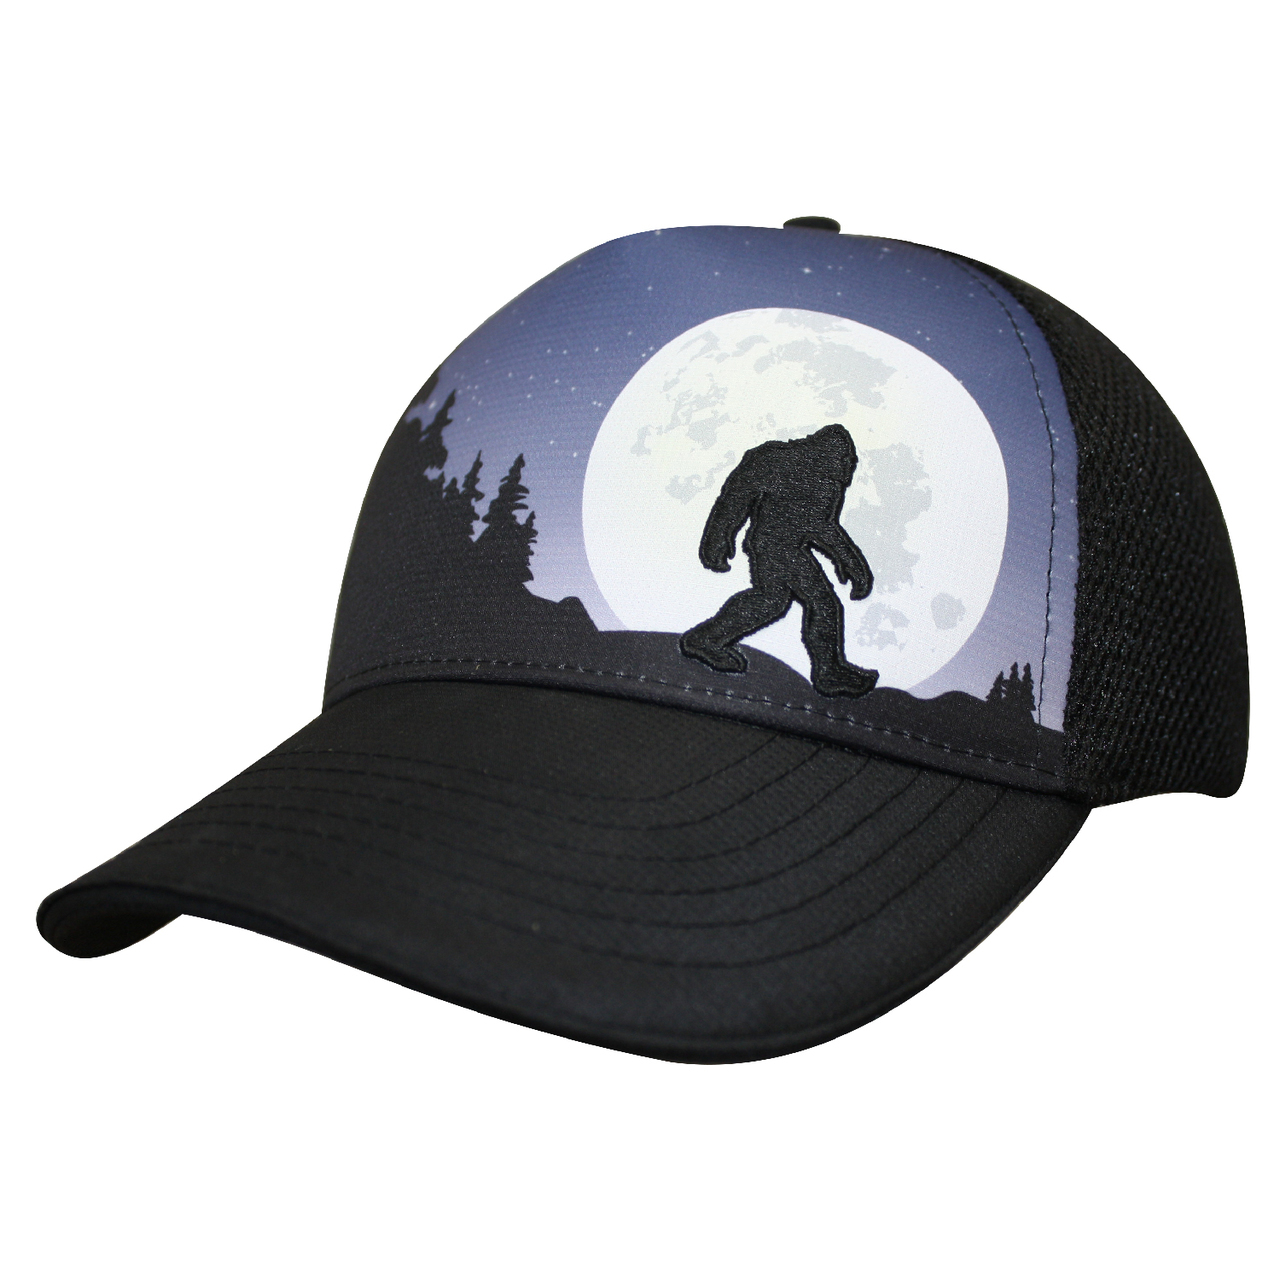 265b71f2 Bigfoot's Back with Headsweats' Expanded Bigfoot Performance Trucker  Collection | Outdoor Sports Wire